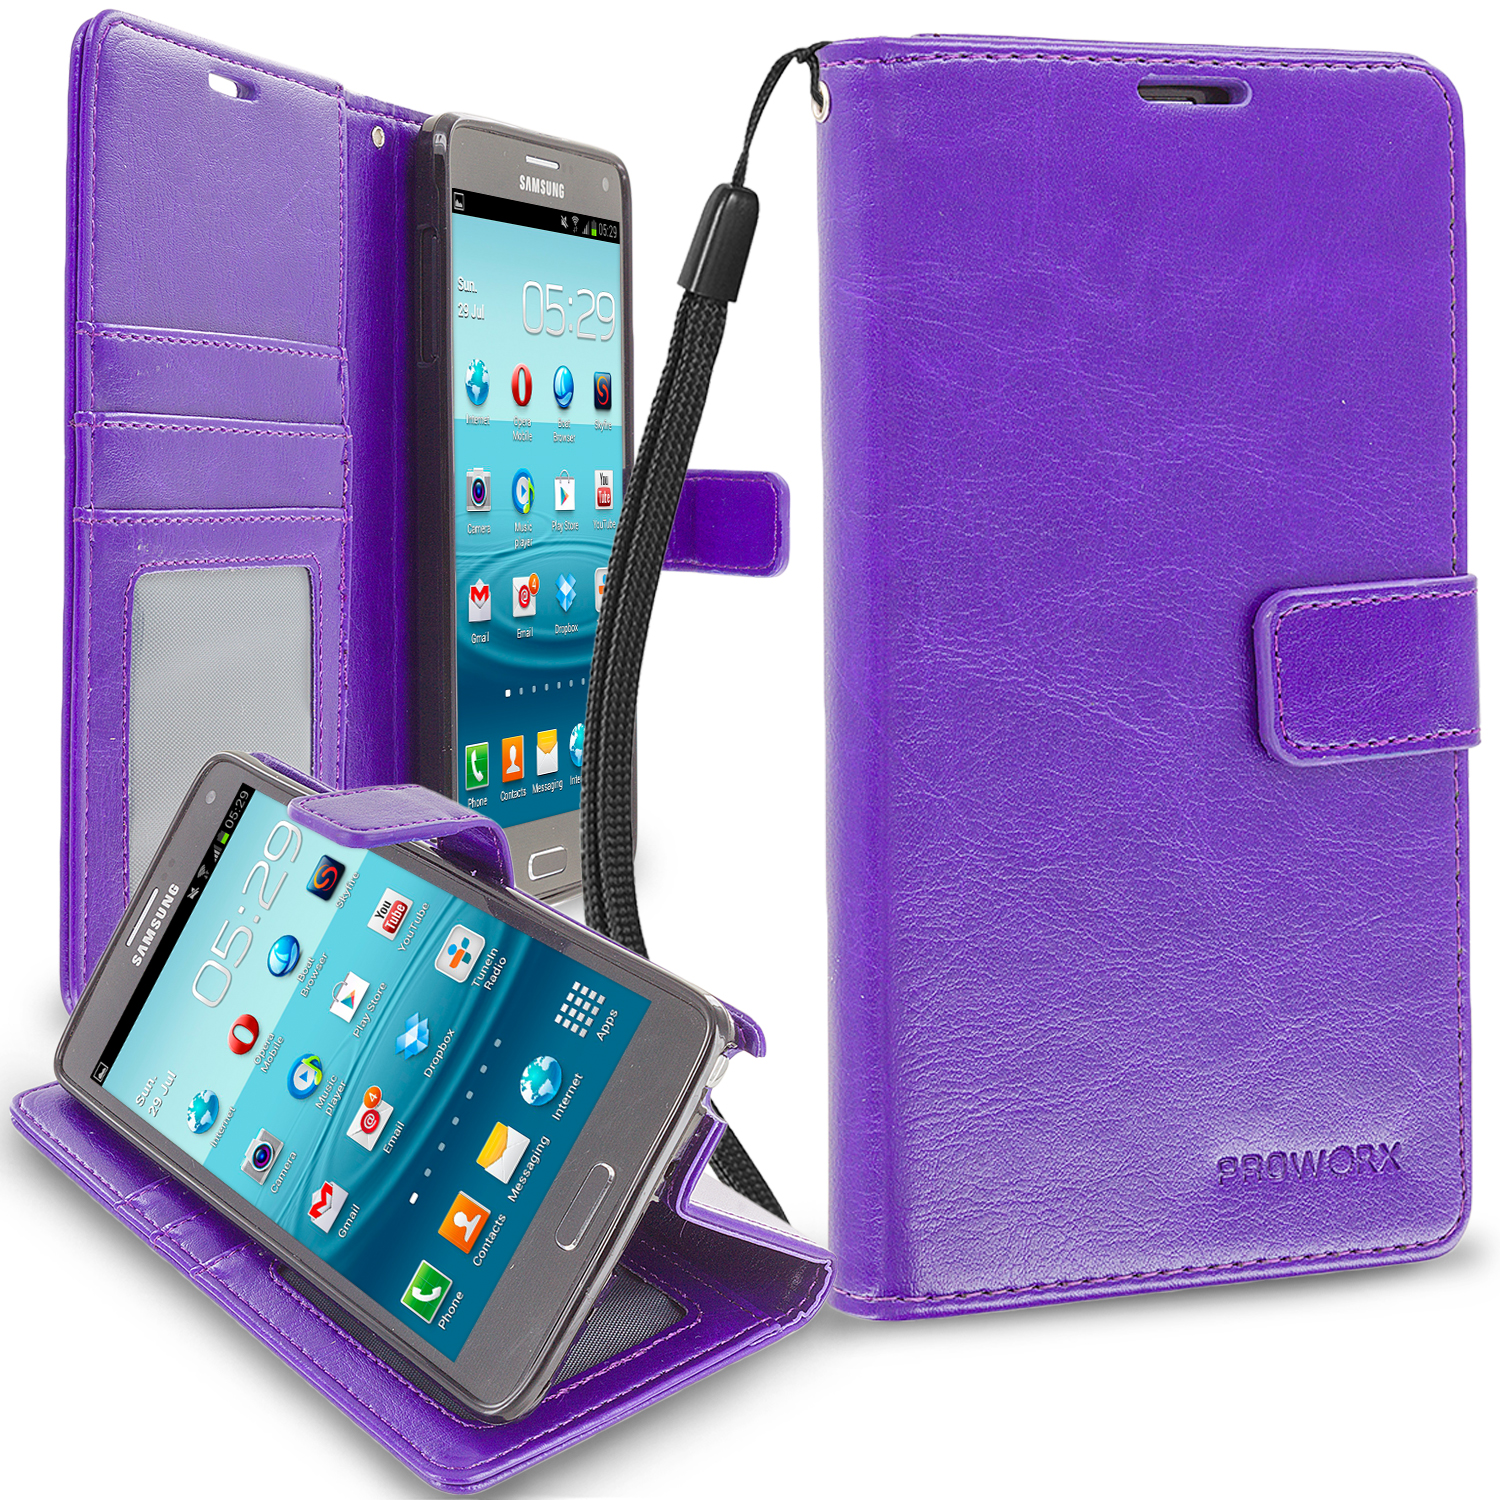 Samsung Galaxy Note 4 Purple ProWorx Wallet Case Luxury PU Leather Case Cover With Card Slots & Stand